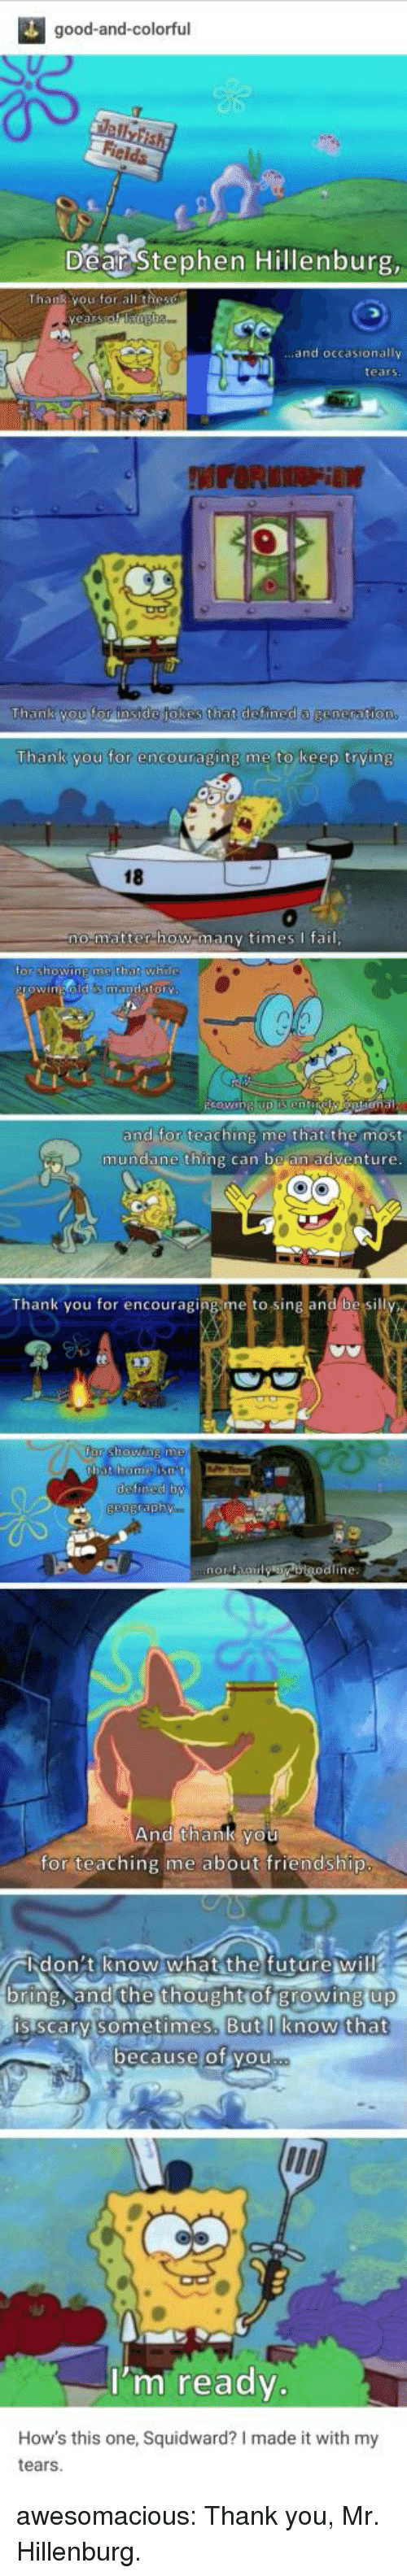 Growing Up, Squidward, and Stephen: good-and-colorful  Dear Stephen Hillenburg  .and occasionally  tears  Thank you for instde jokes that defined a  Thank you for encouraging me to keep trving  18  0  matter how manv timesfai  or shOWINE  that whi  and for teaching me that the most  mundane thing can be an adventure  Thank you for encouraging me to sing and be si  ine:  And thank you  for teaching me about friendship  バlid on : tien0w.what the futurew ill  bring. and the thought of growing up  up  is scarv sometimes.  But I know that  ecause of vou  I'm ready.  How's this one, Squidward? I made it with my  tears awesomacious:  Thank you, Mr. Hillenburg.